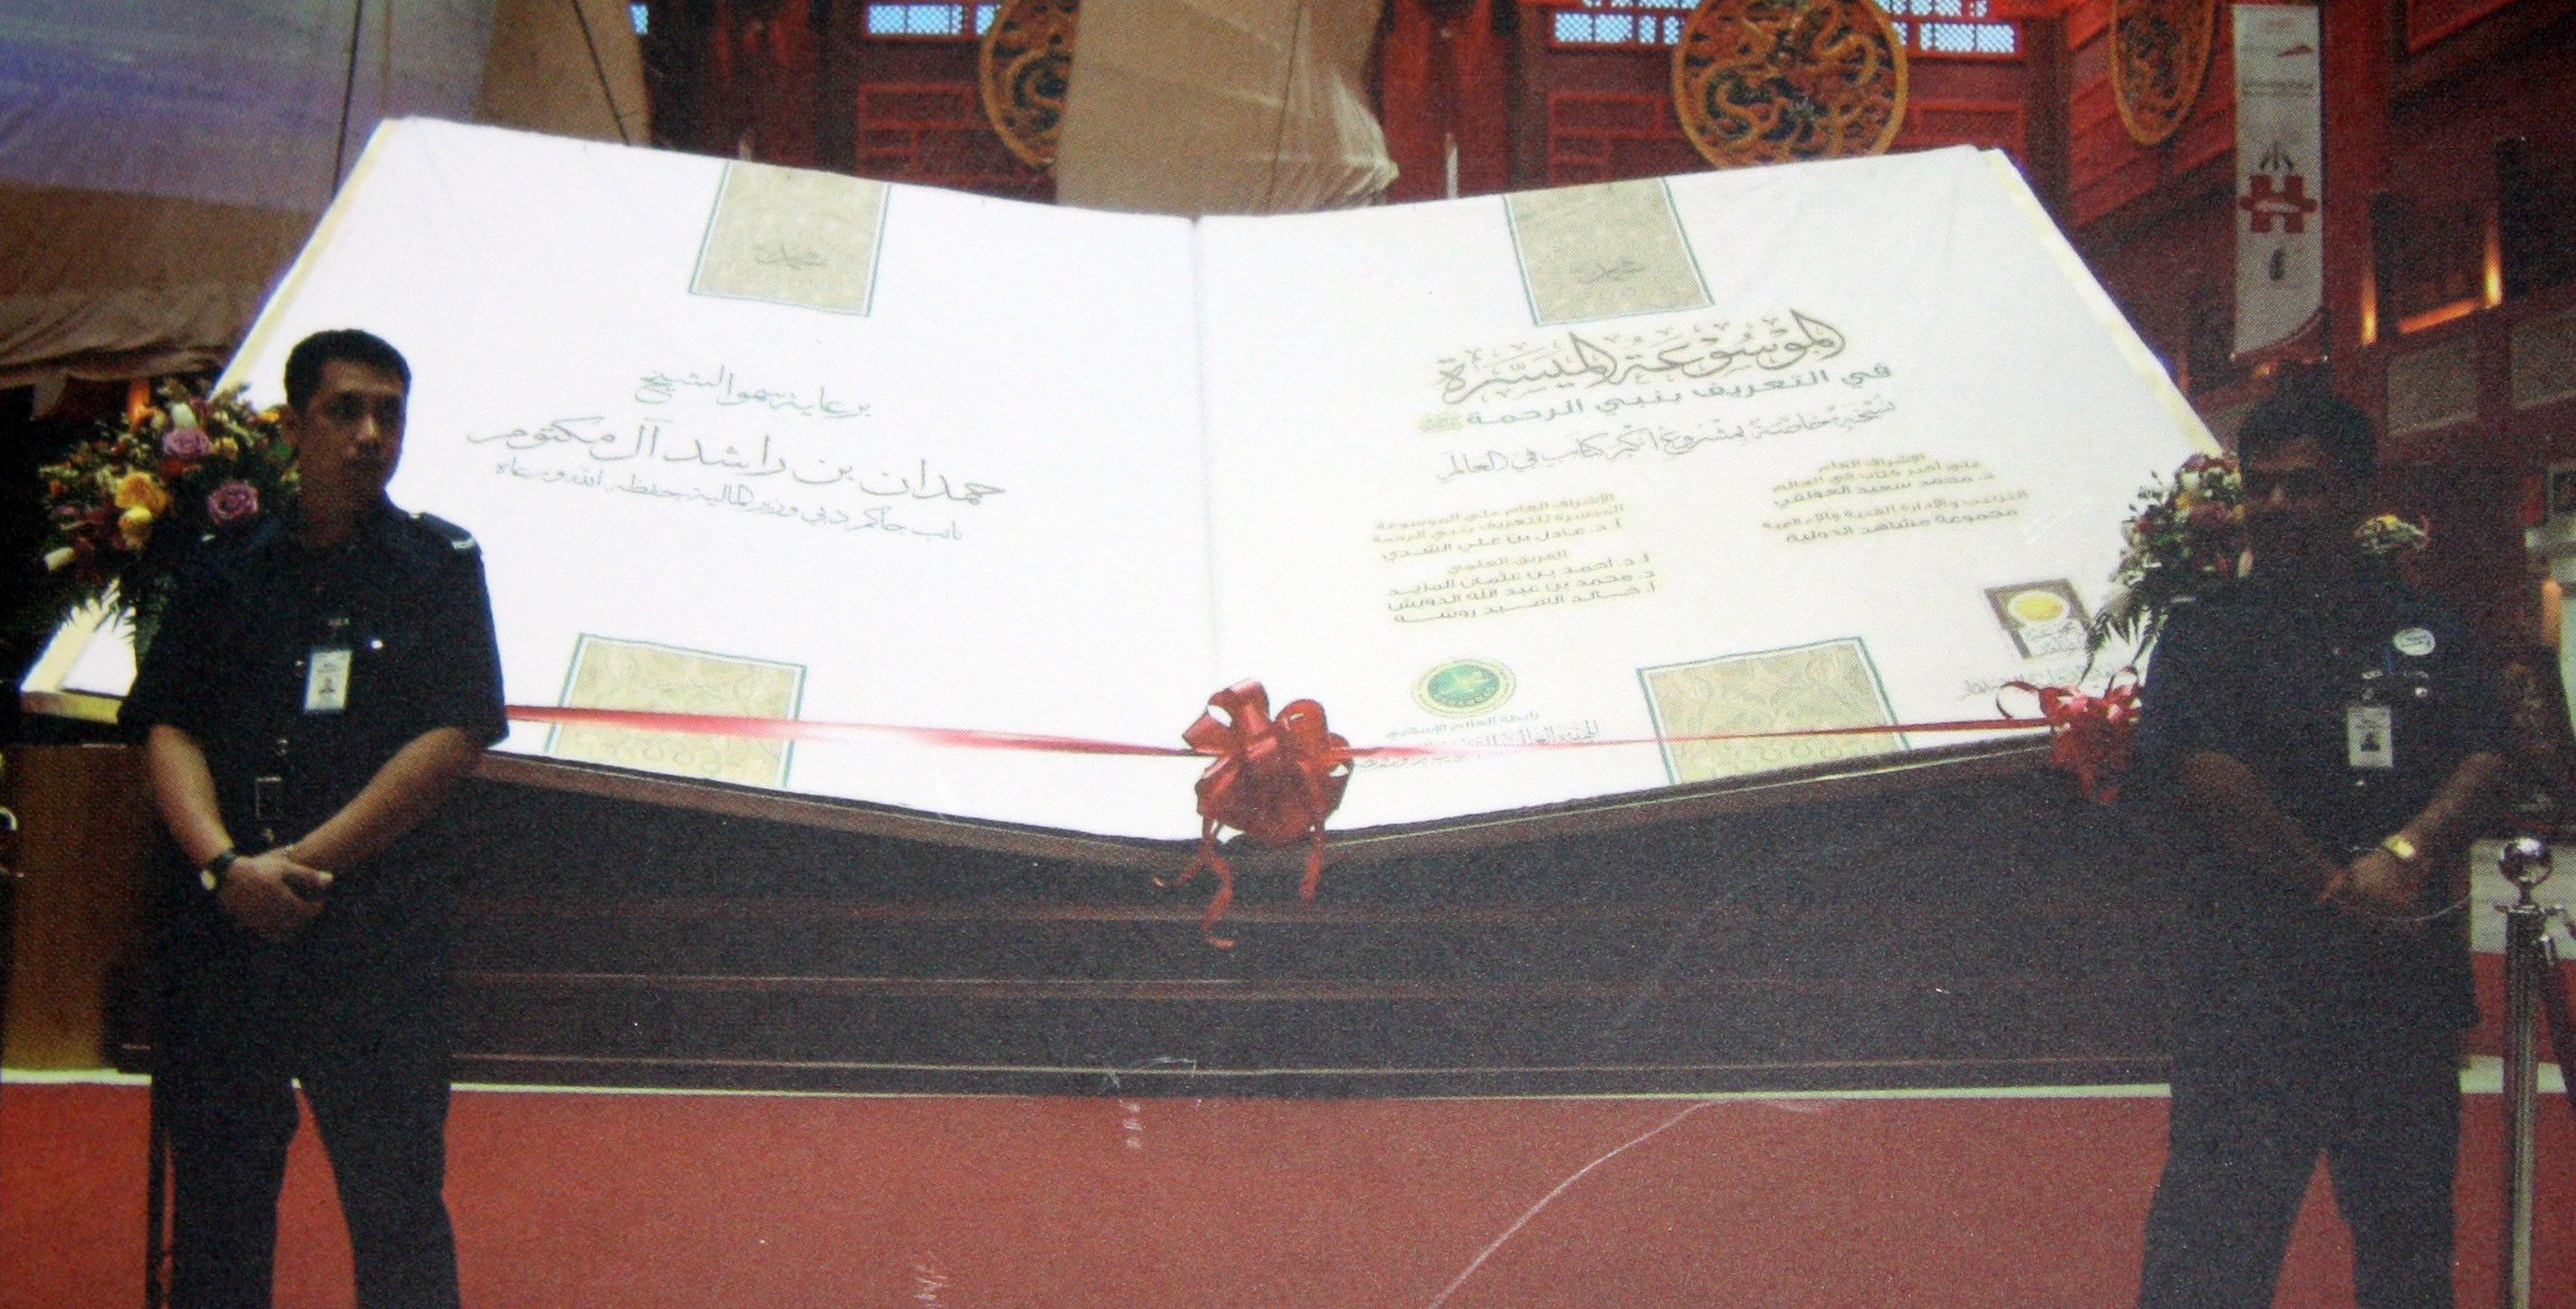 Guinness record: world's biggest cultural and religious book